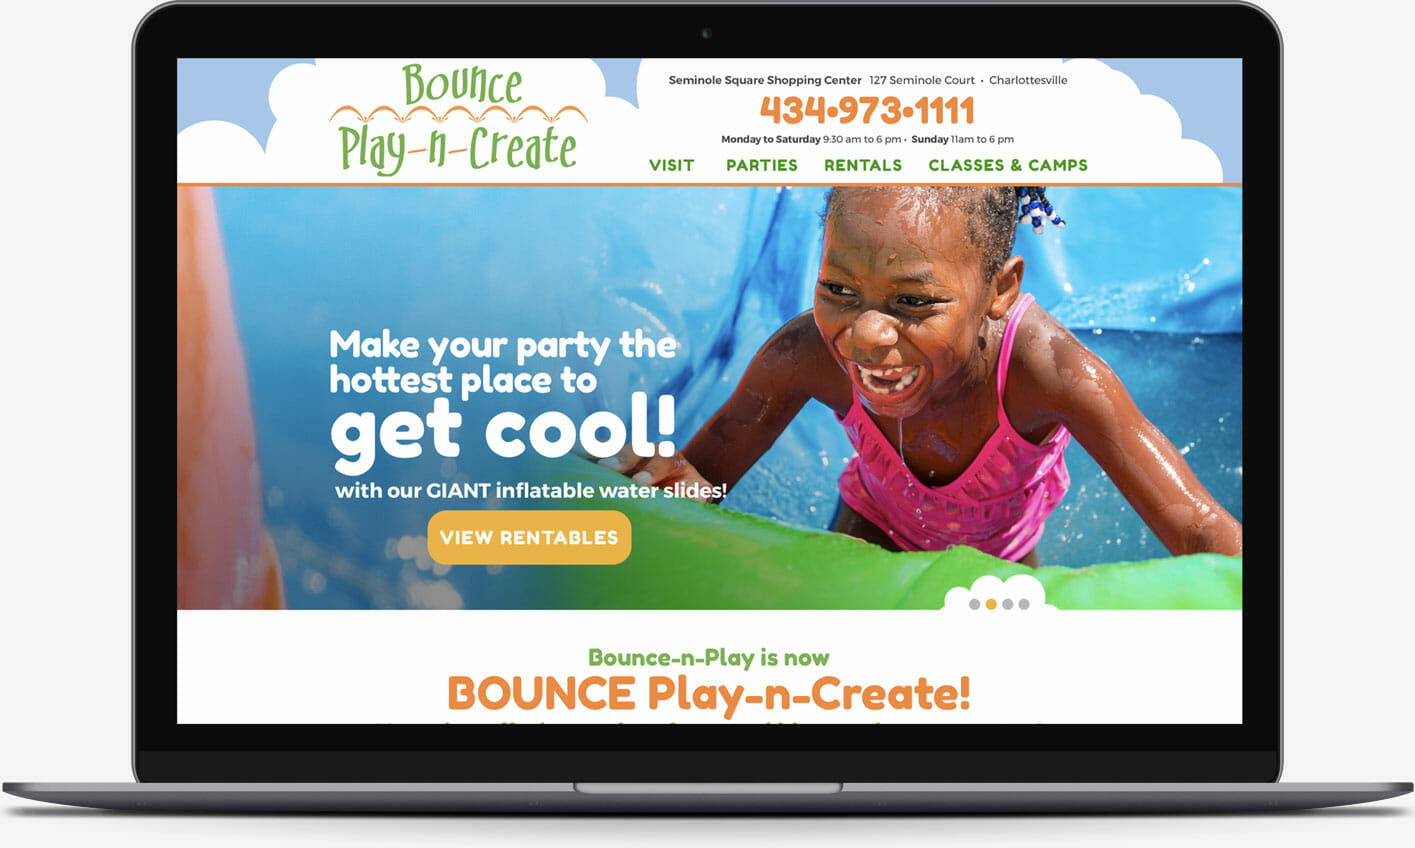 Bounce Play-n-Create website home page design